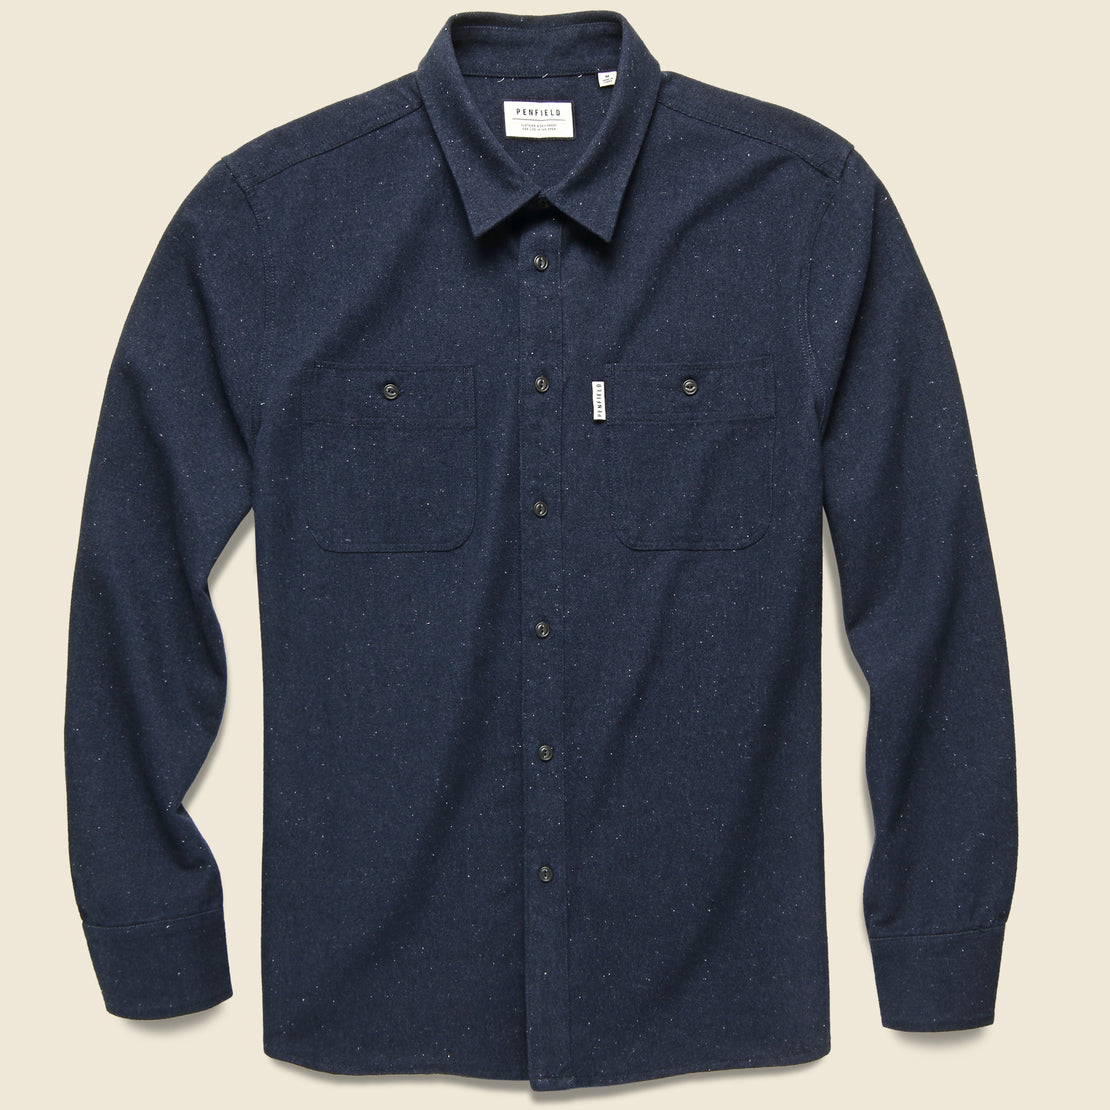 Penfield Blackmer Neps Shirt - Navy